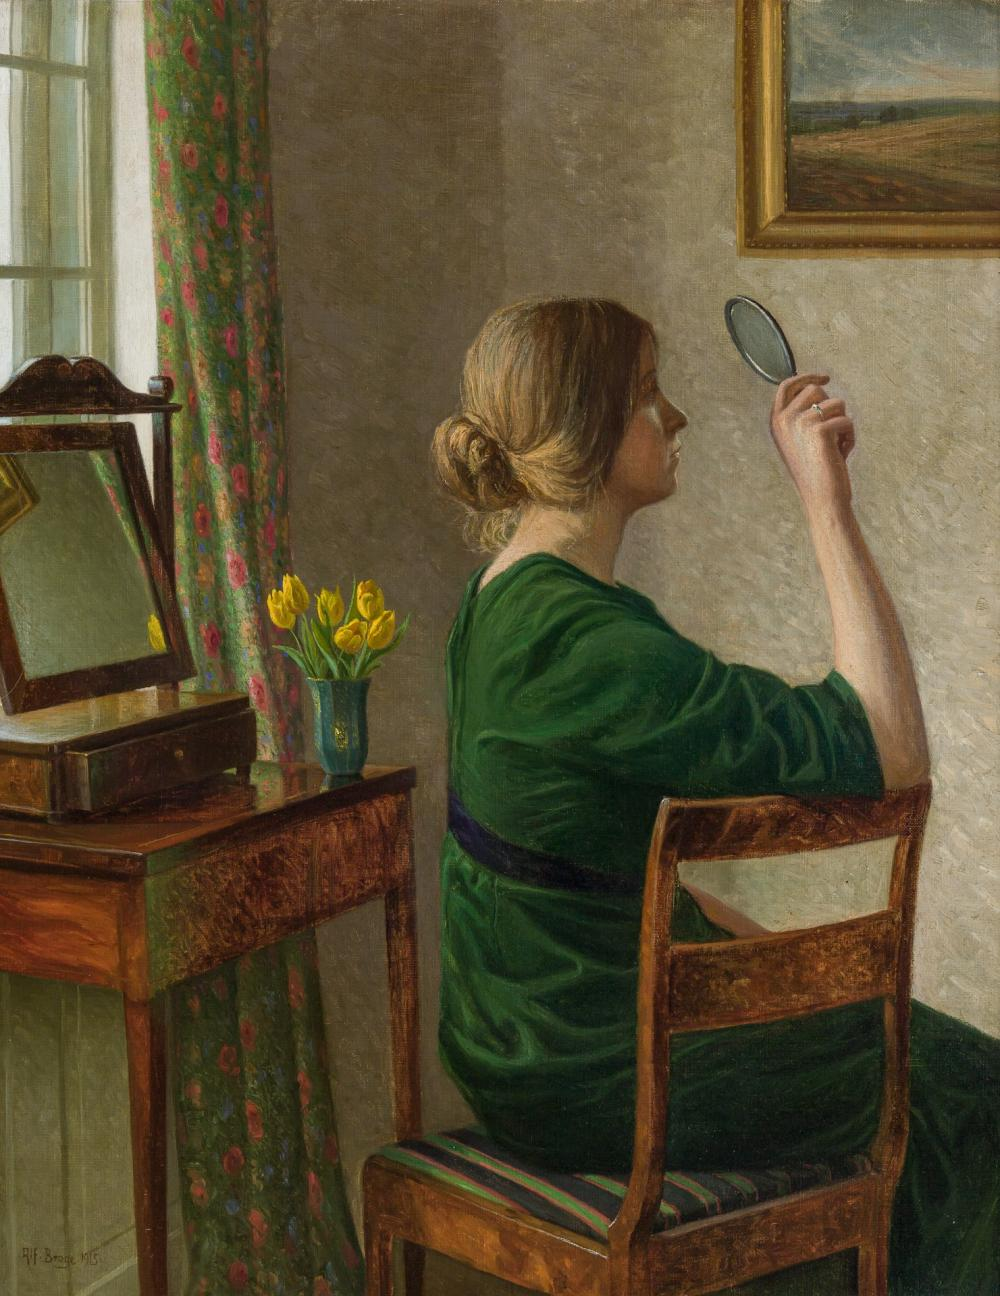 ALFRED BROGE, Danish (1870-1955), Reflections, 1915, oil on canvas, 27 x 21 inches